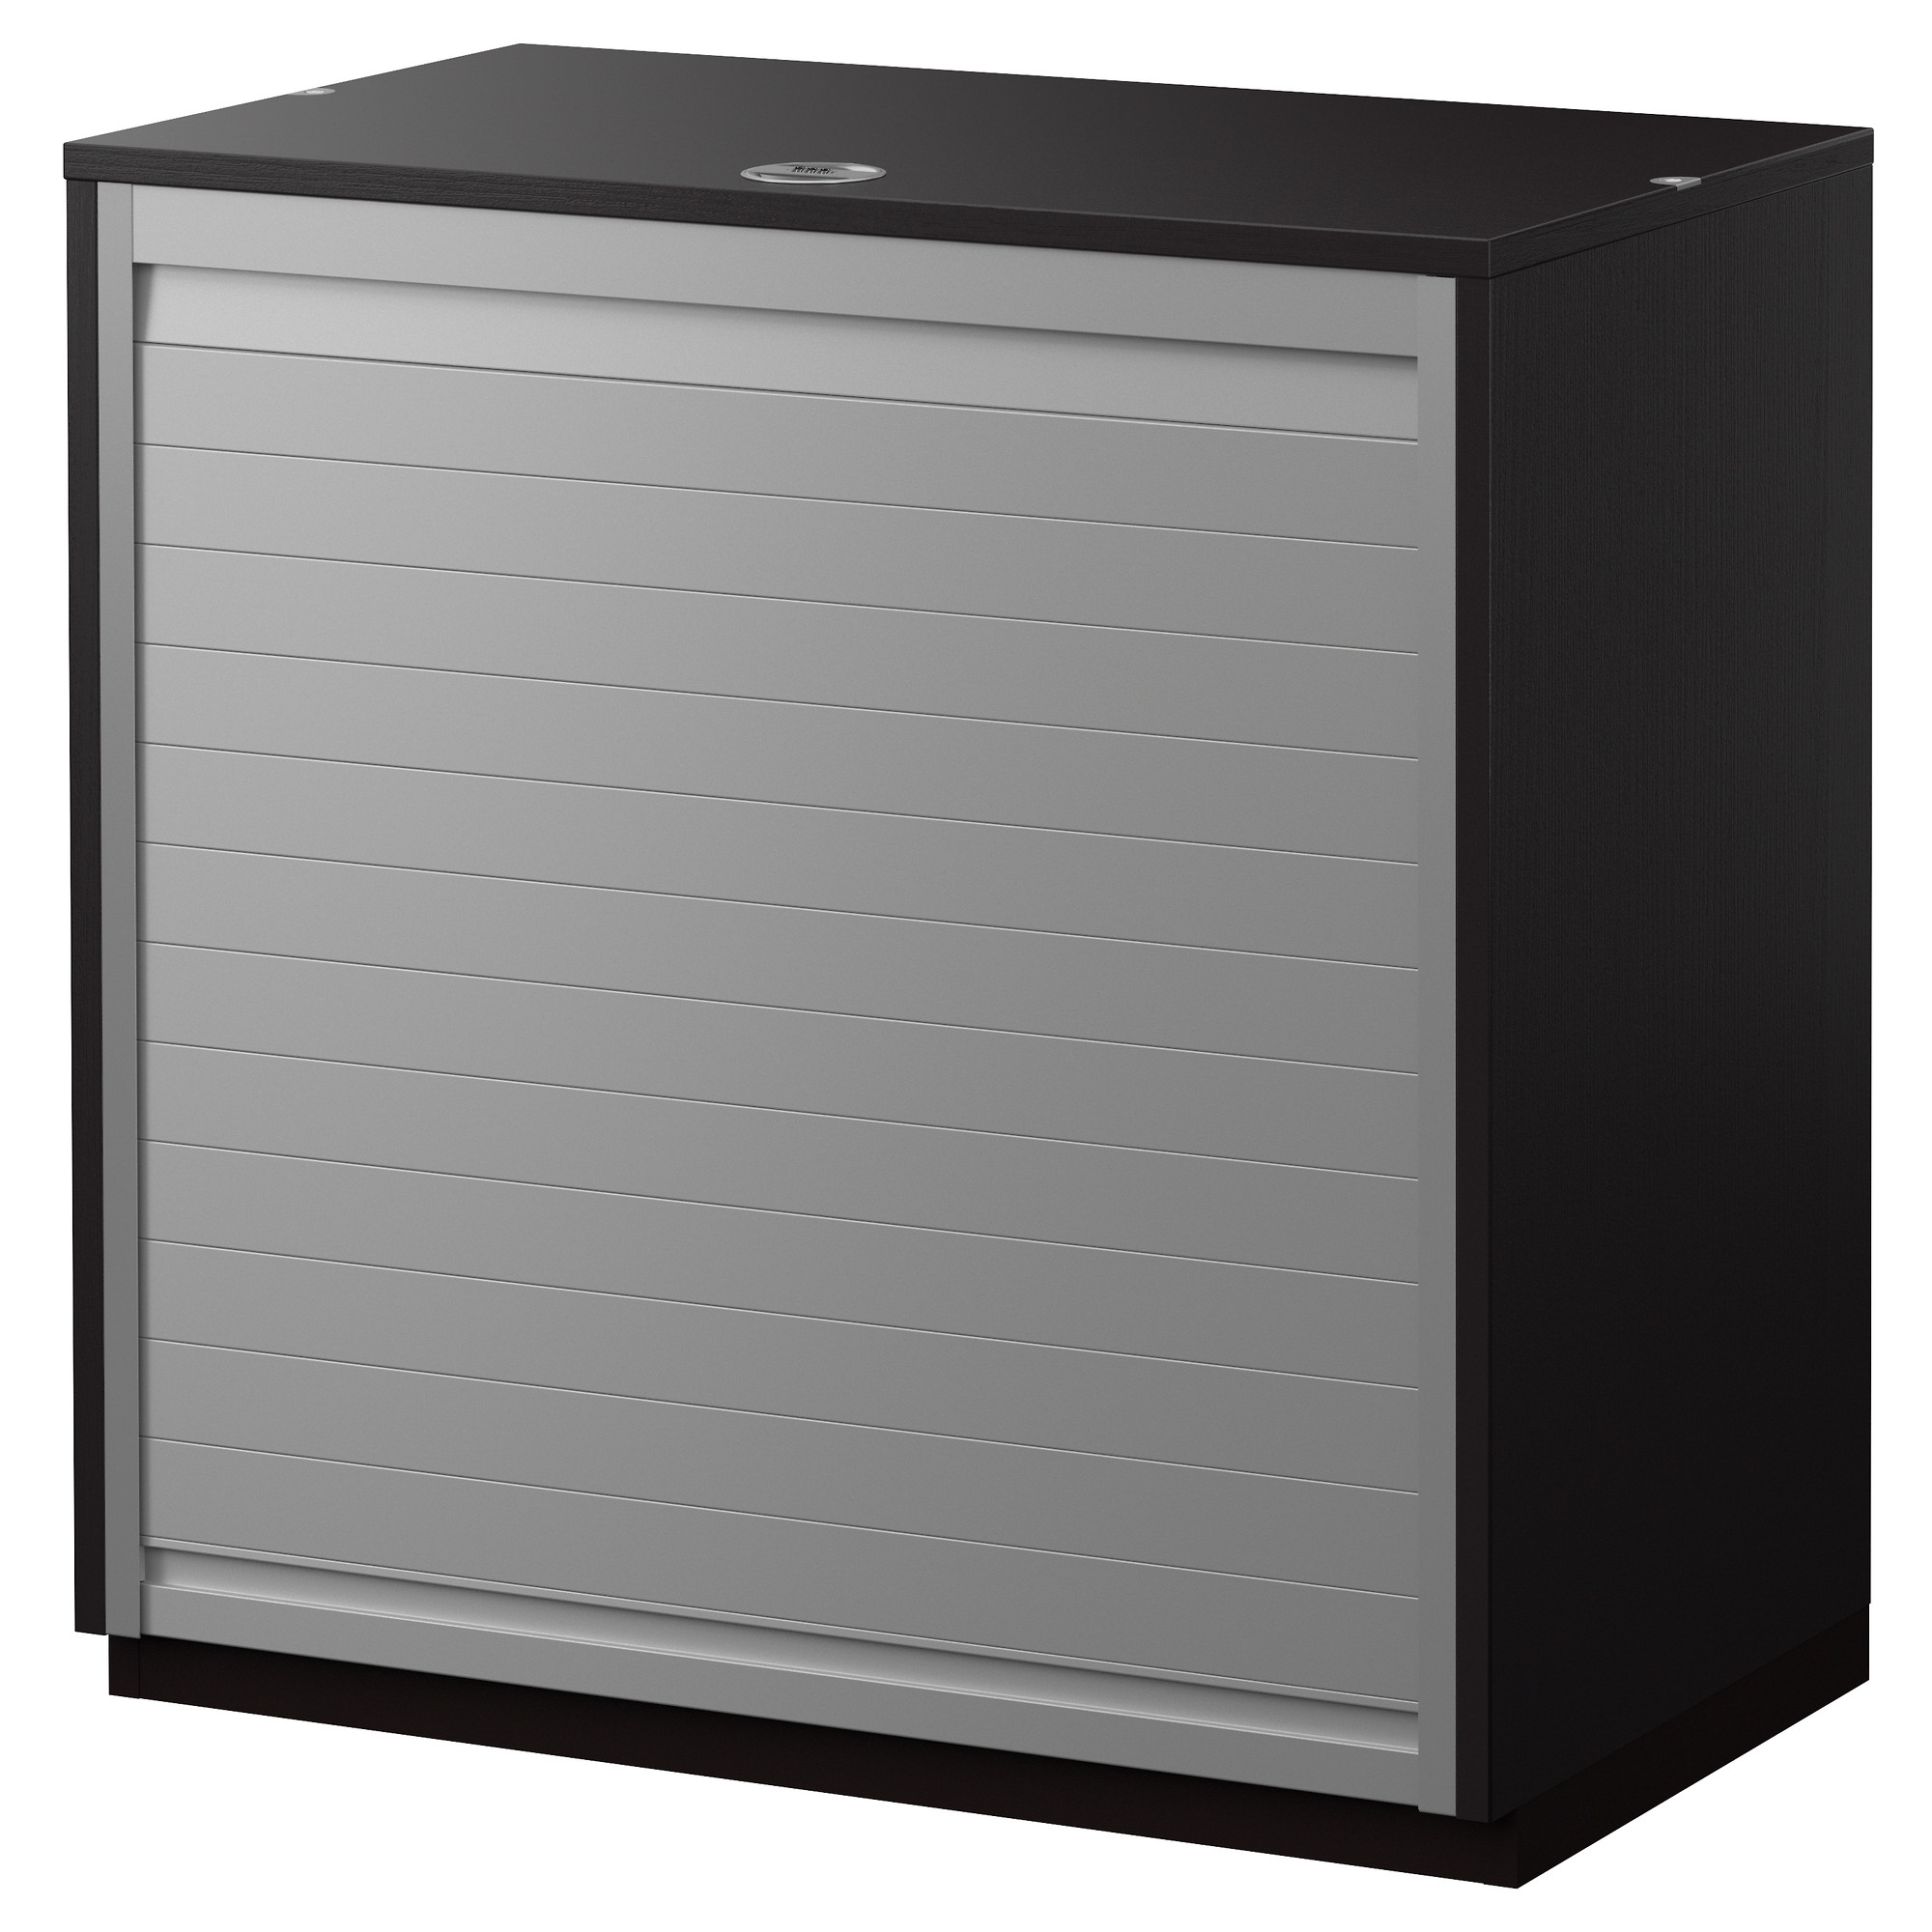 home office storage ideas 12 convert galant roll front cabinet black brown width 31 1 2 charming thoughtful home office